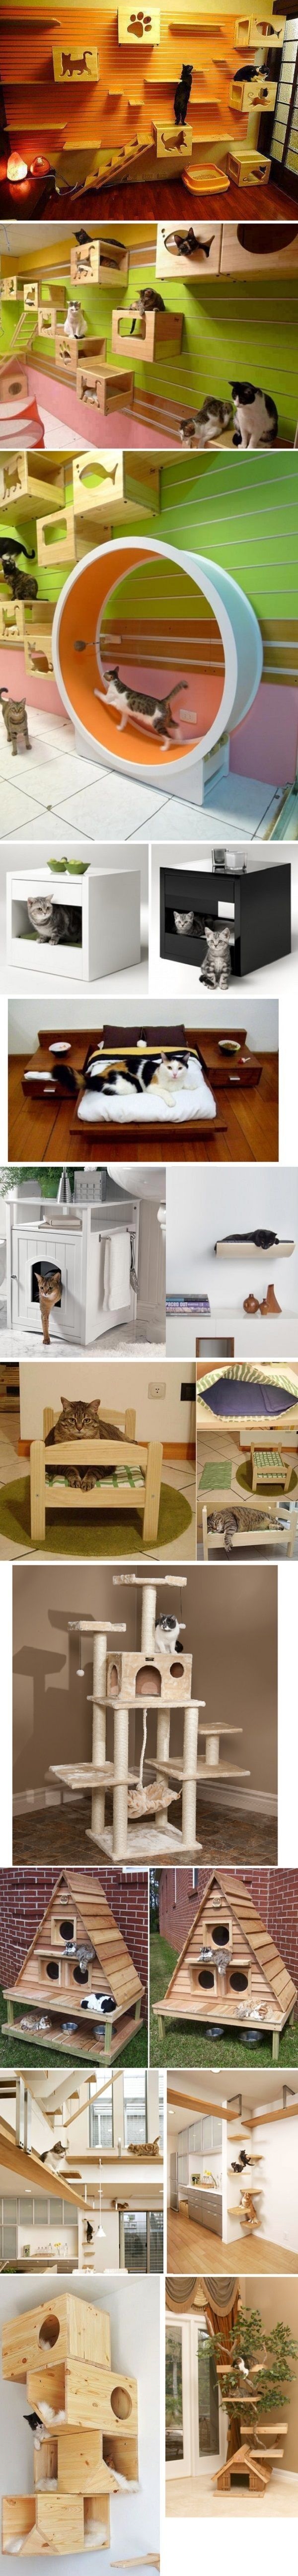 15 Awesome Cat Playhouses